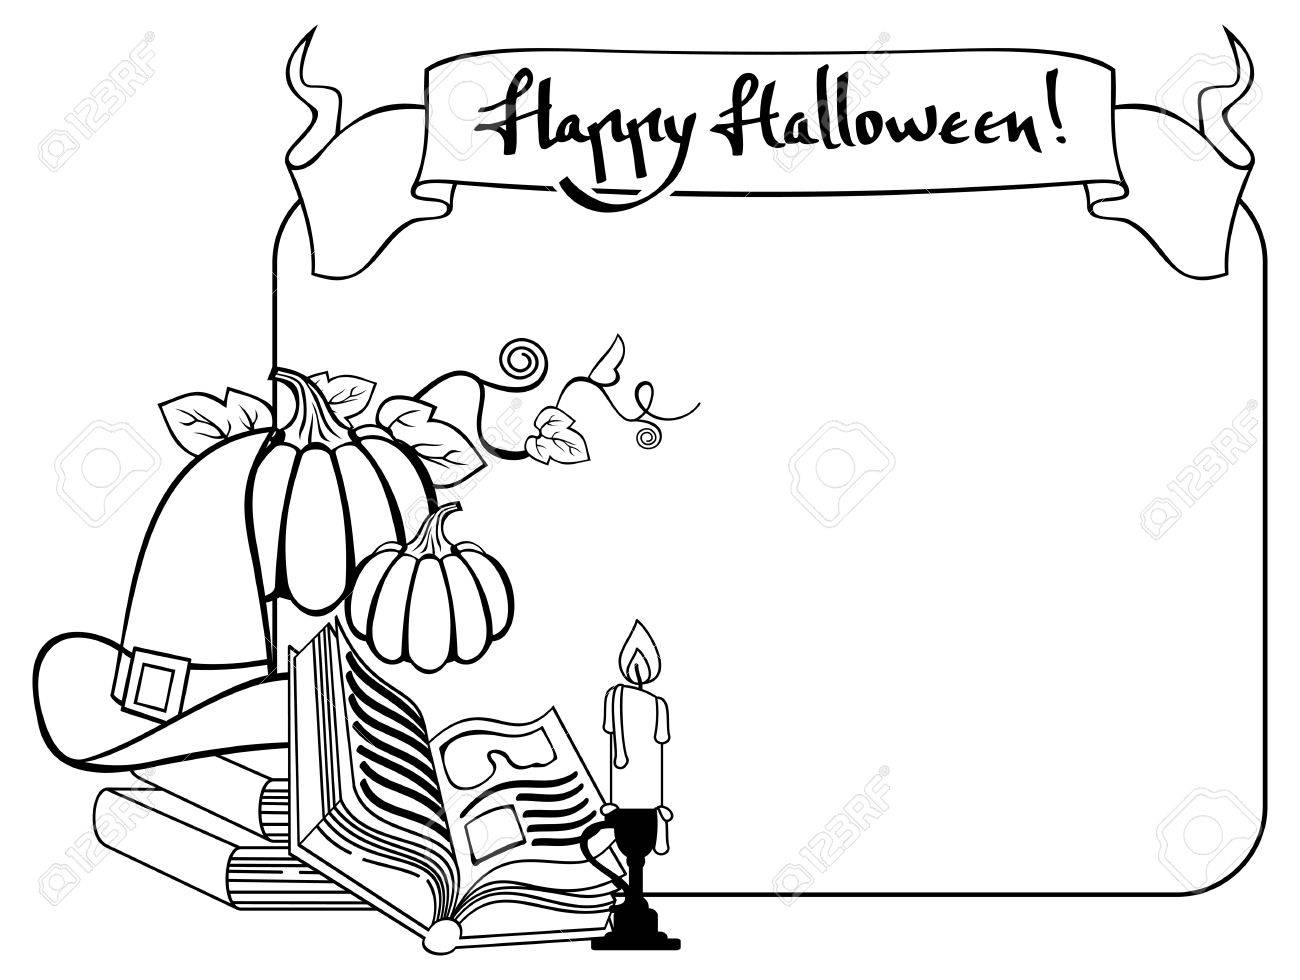 1300x980 Contour Halloween Frame With Witch Hat, Magician Books